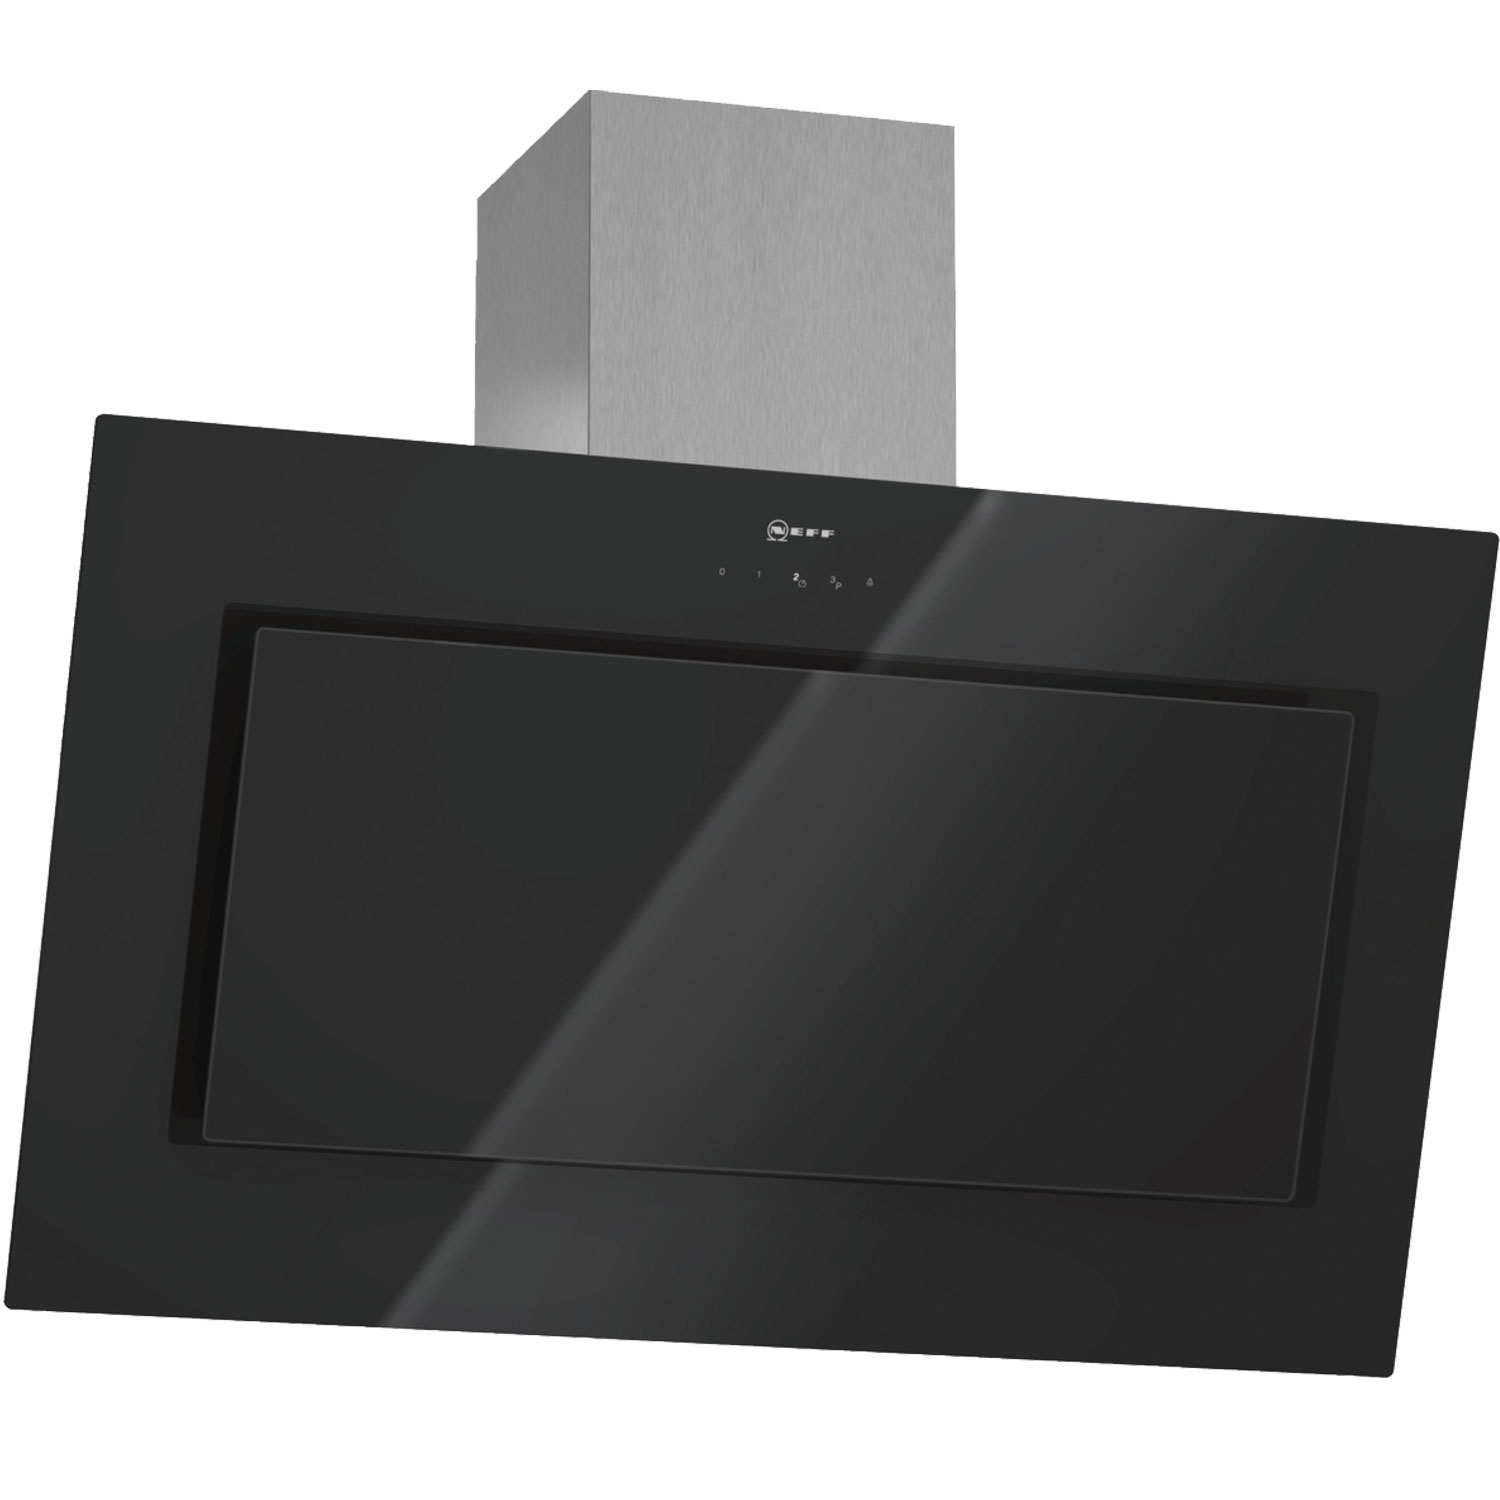 Dunstabzugshaube Schräg Neff D39e49s0gb Angled 90cm Chimney Cooker Hood With Black